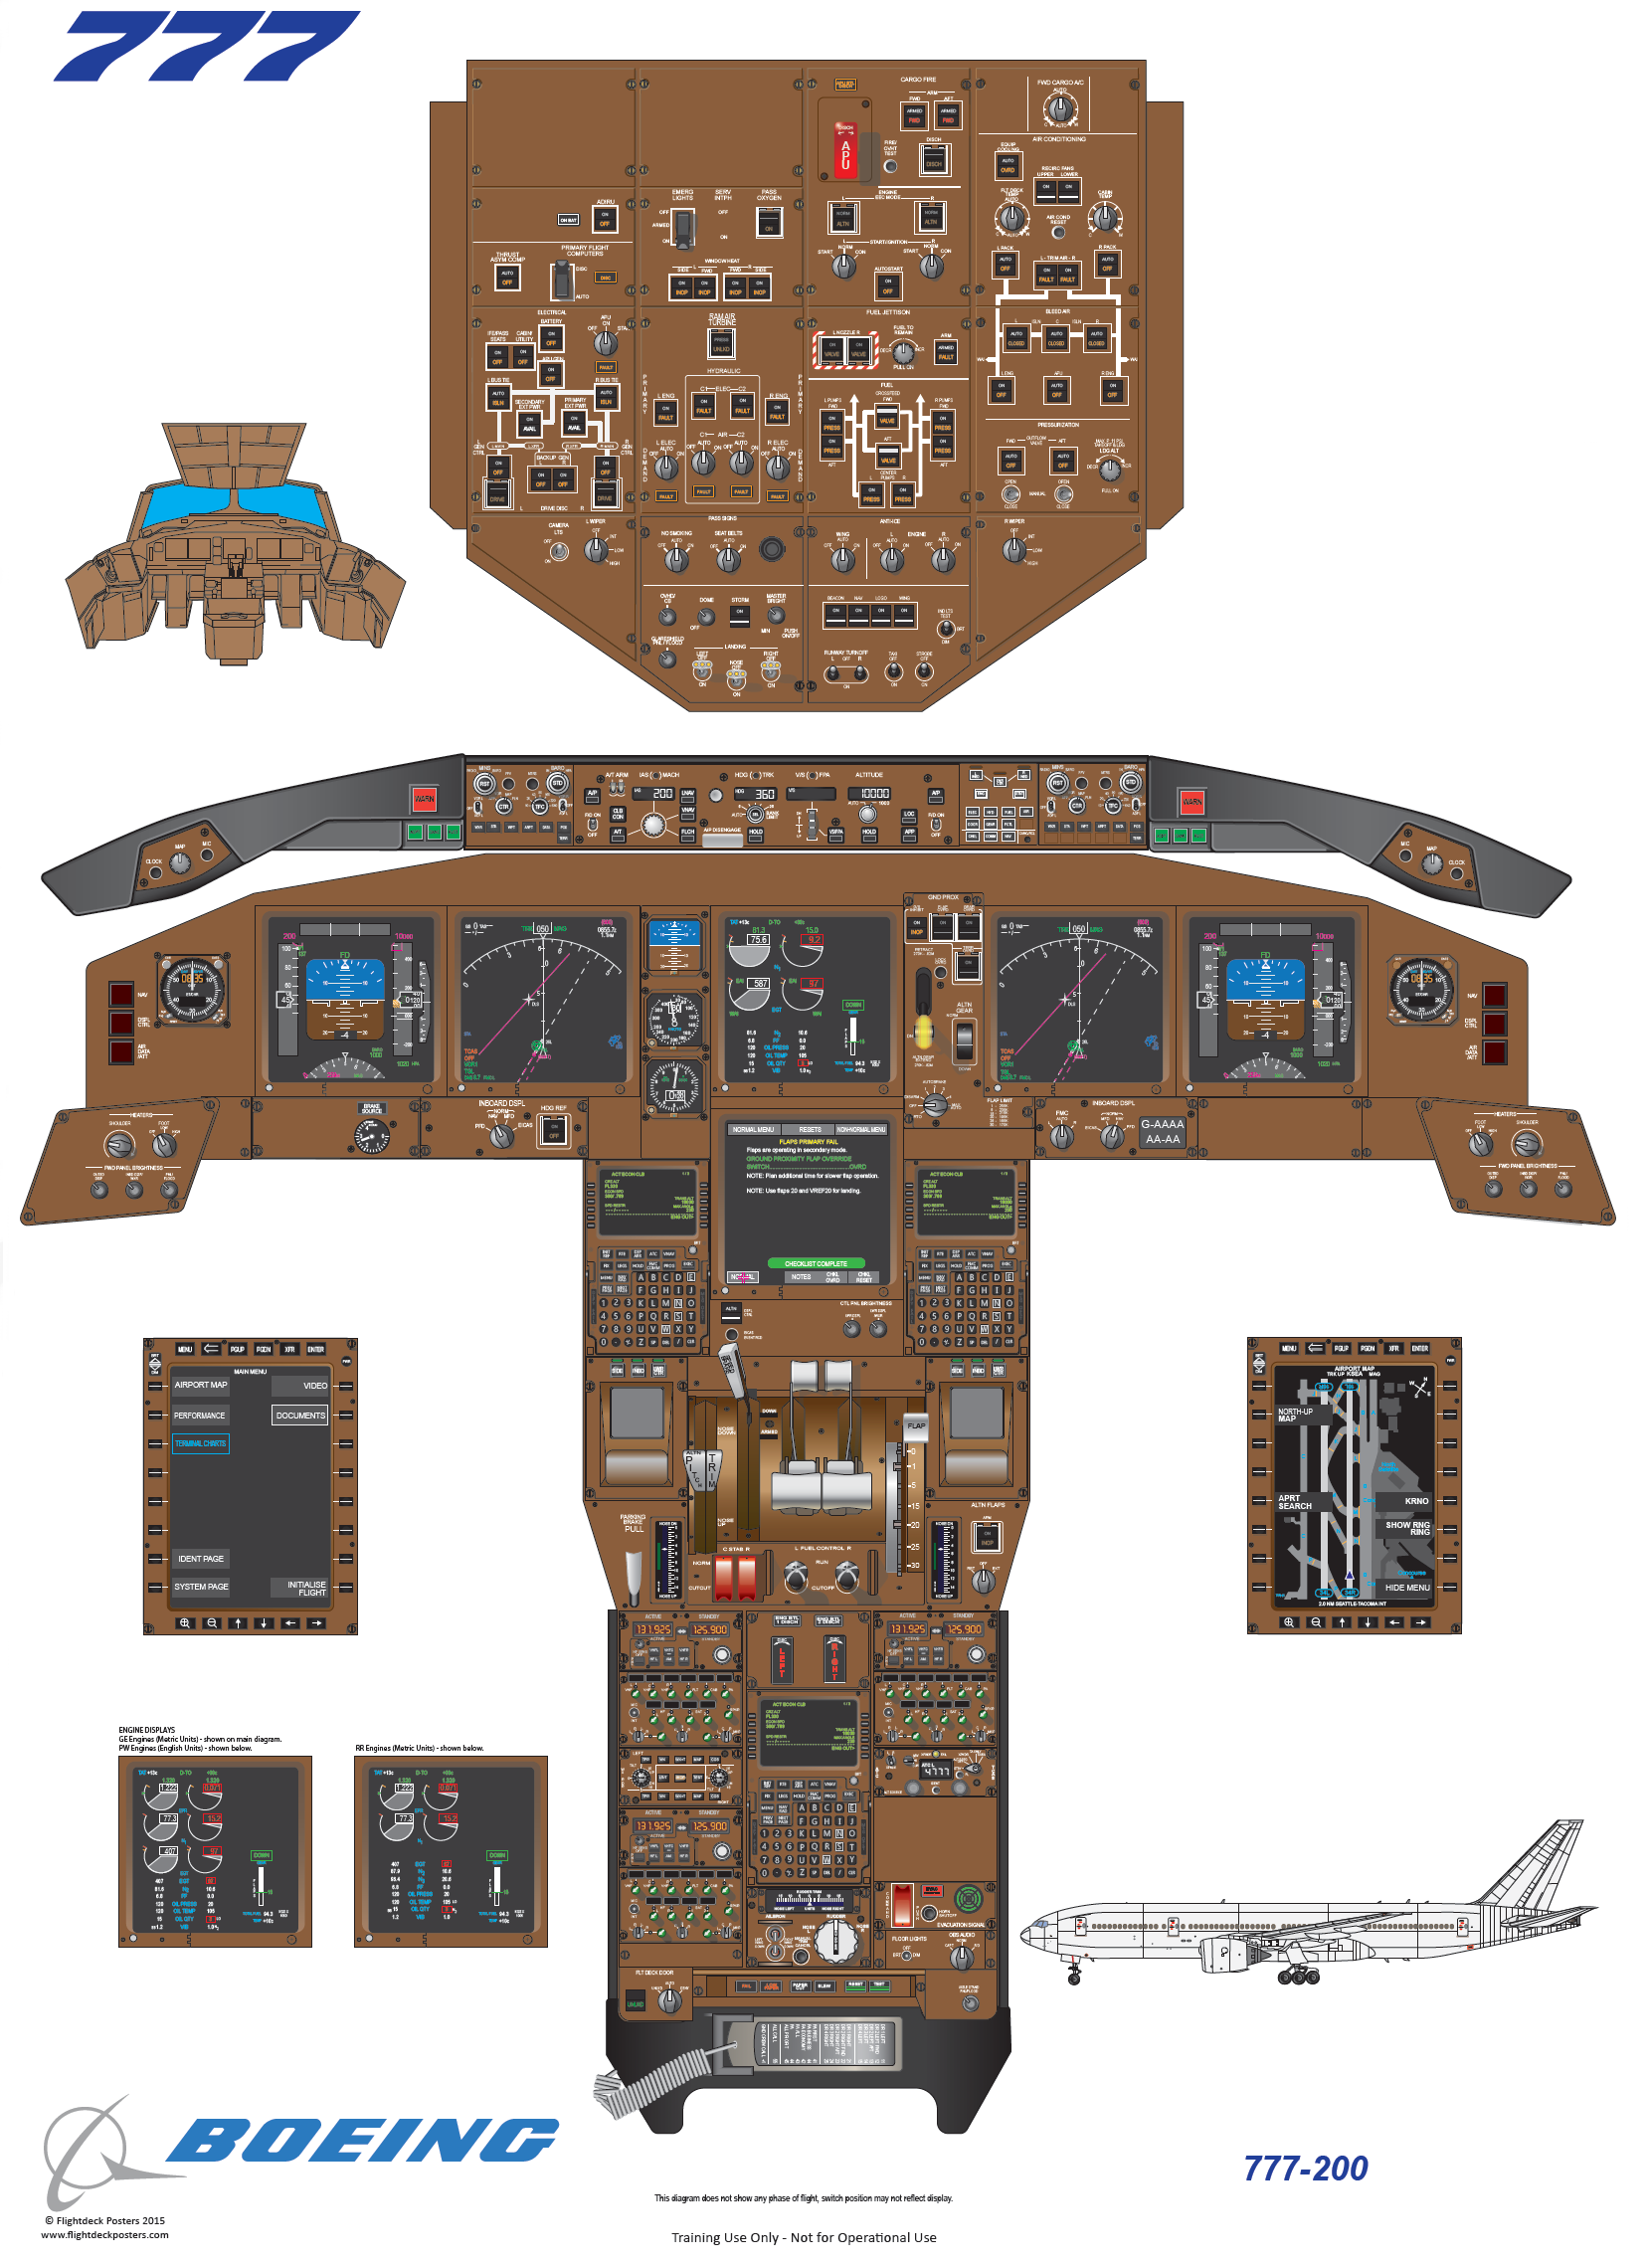 boeing 777 cockpit diagram used for training pilots [ 1658 x 2280 Pixel ]